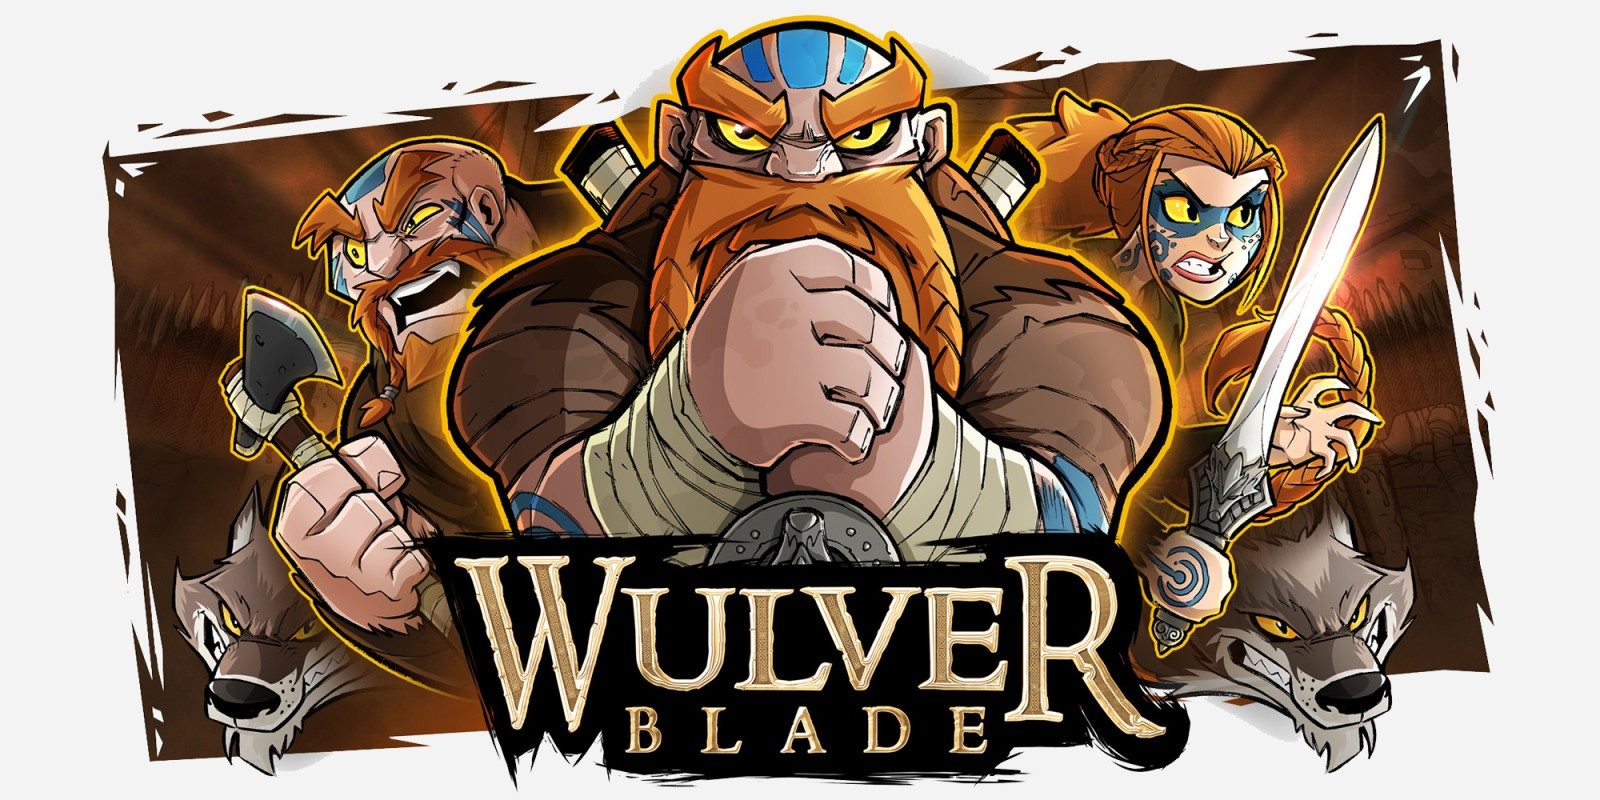 Last Game You Finished And Your Thoughts V3.0 - Page 21 H2x1_NSwitchDS_Wulverblade_image1600w